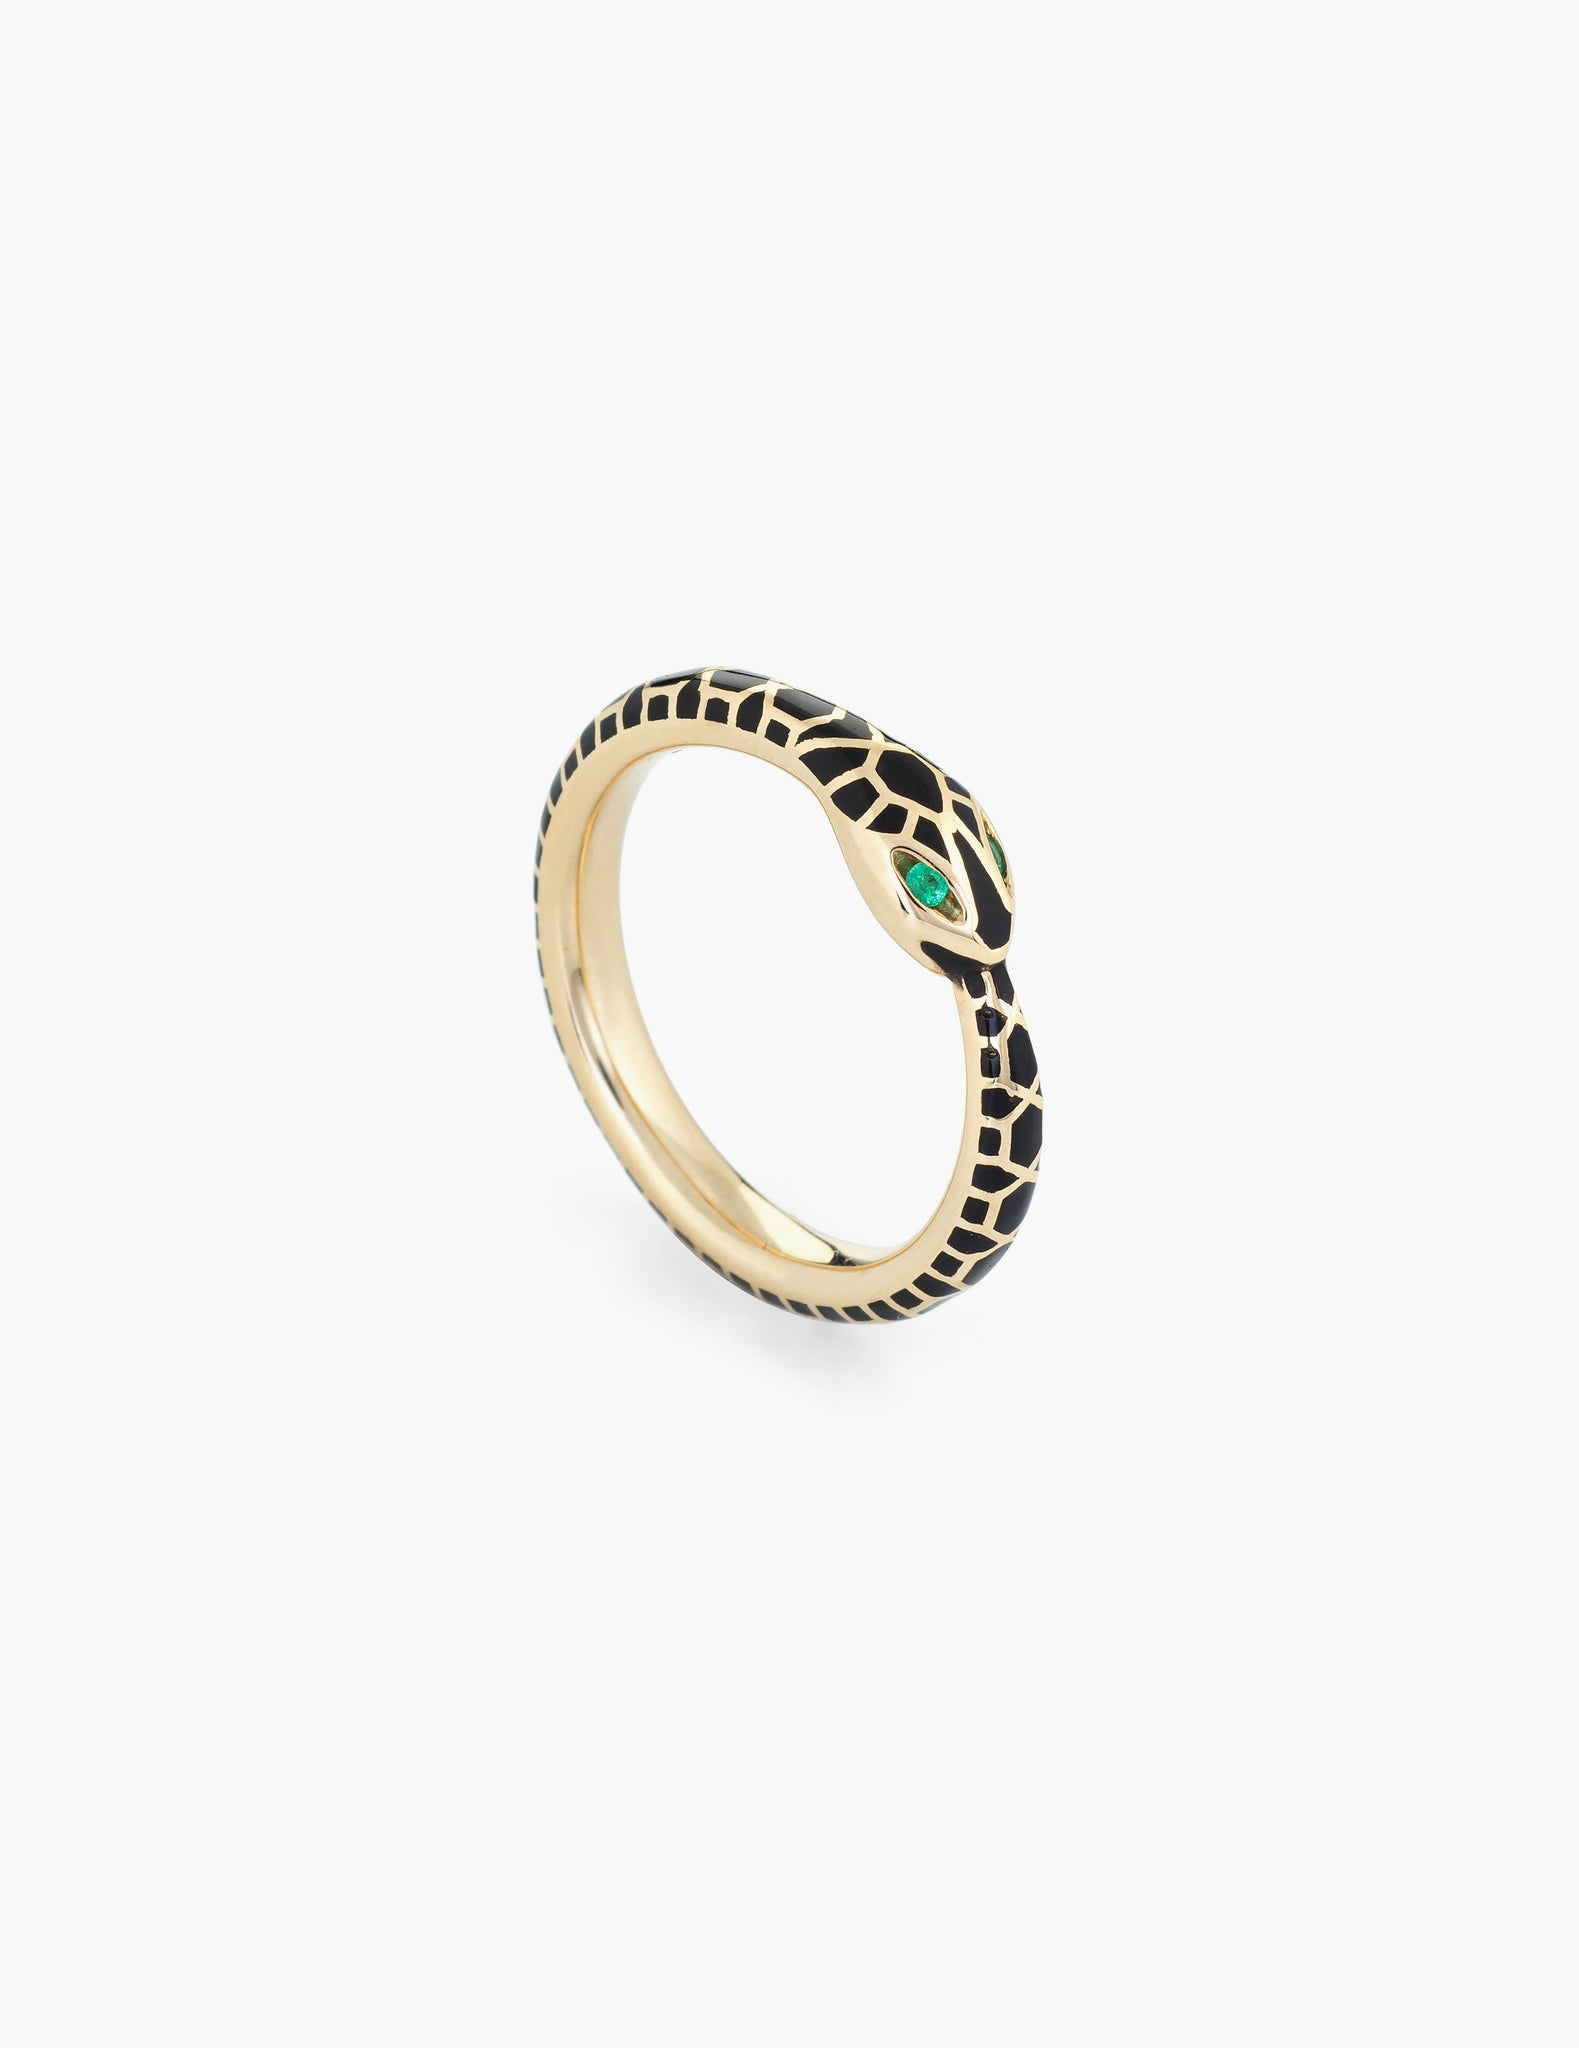 Enamel Ouroboros Ring - Black